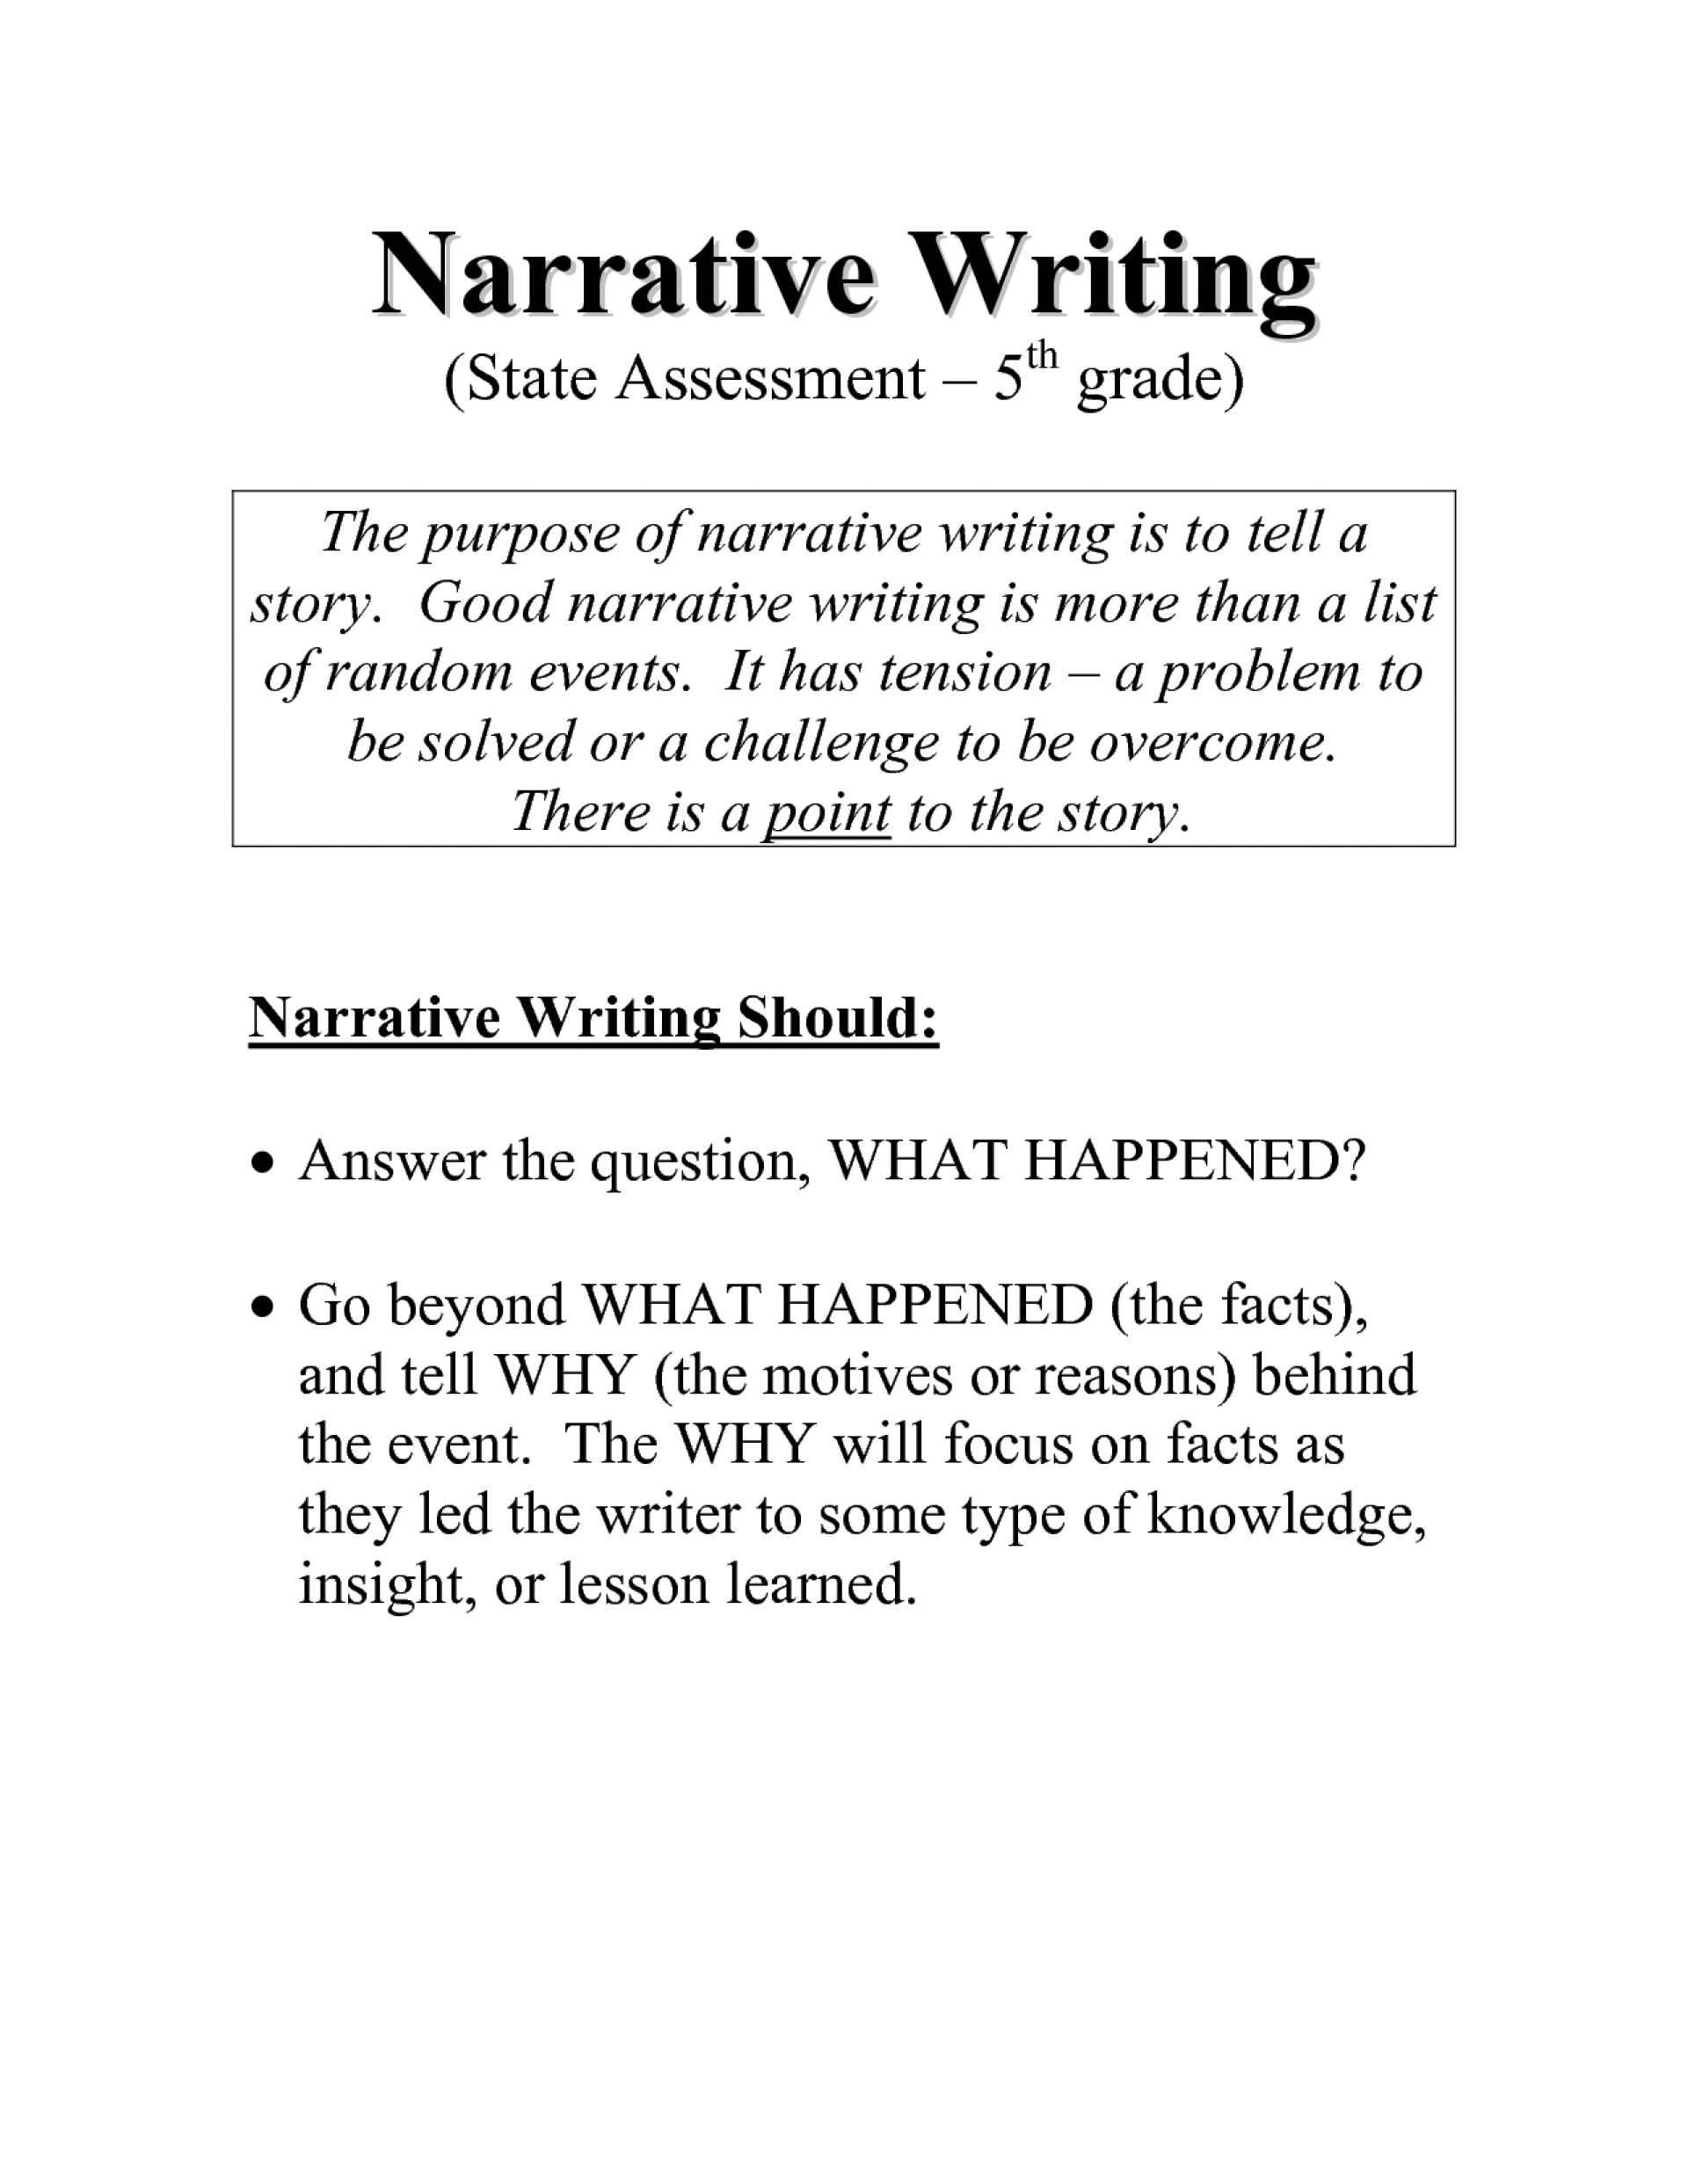 004 Good Narrative Essay Samples In Word Writing Prompt